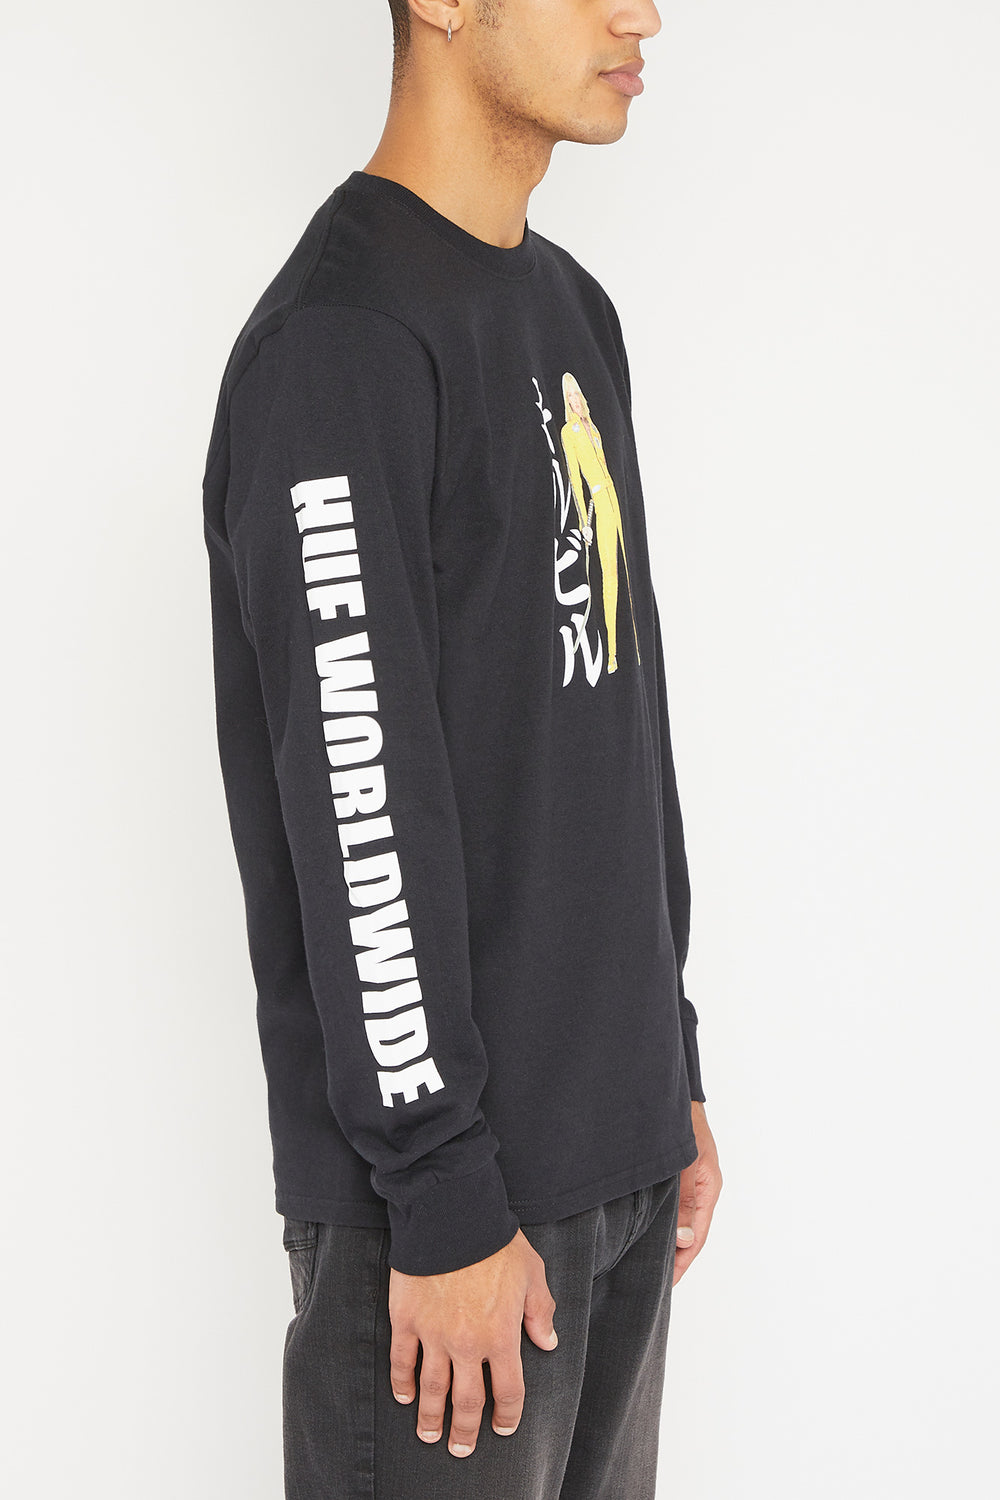 HUF Kill Bill Black Mamba Long Sleeve Top Black